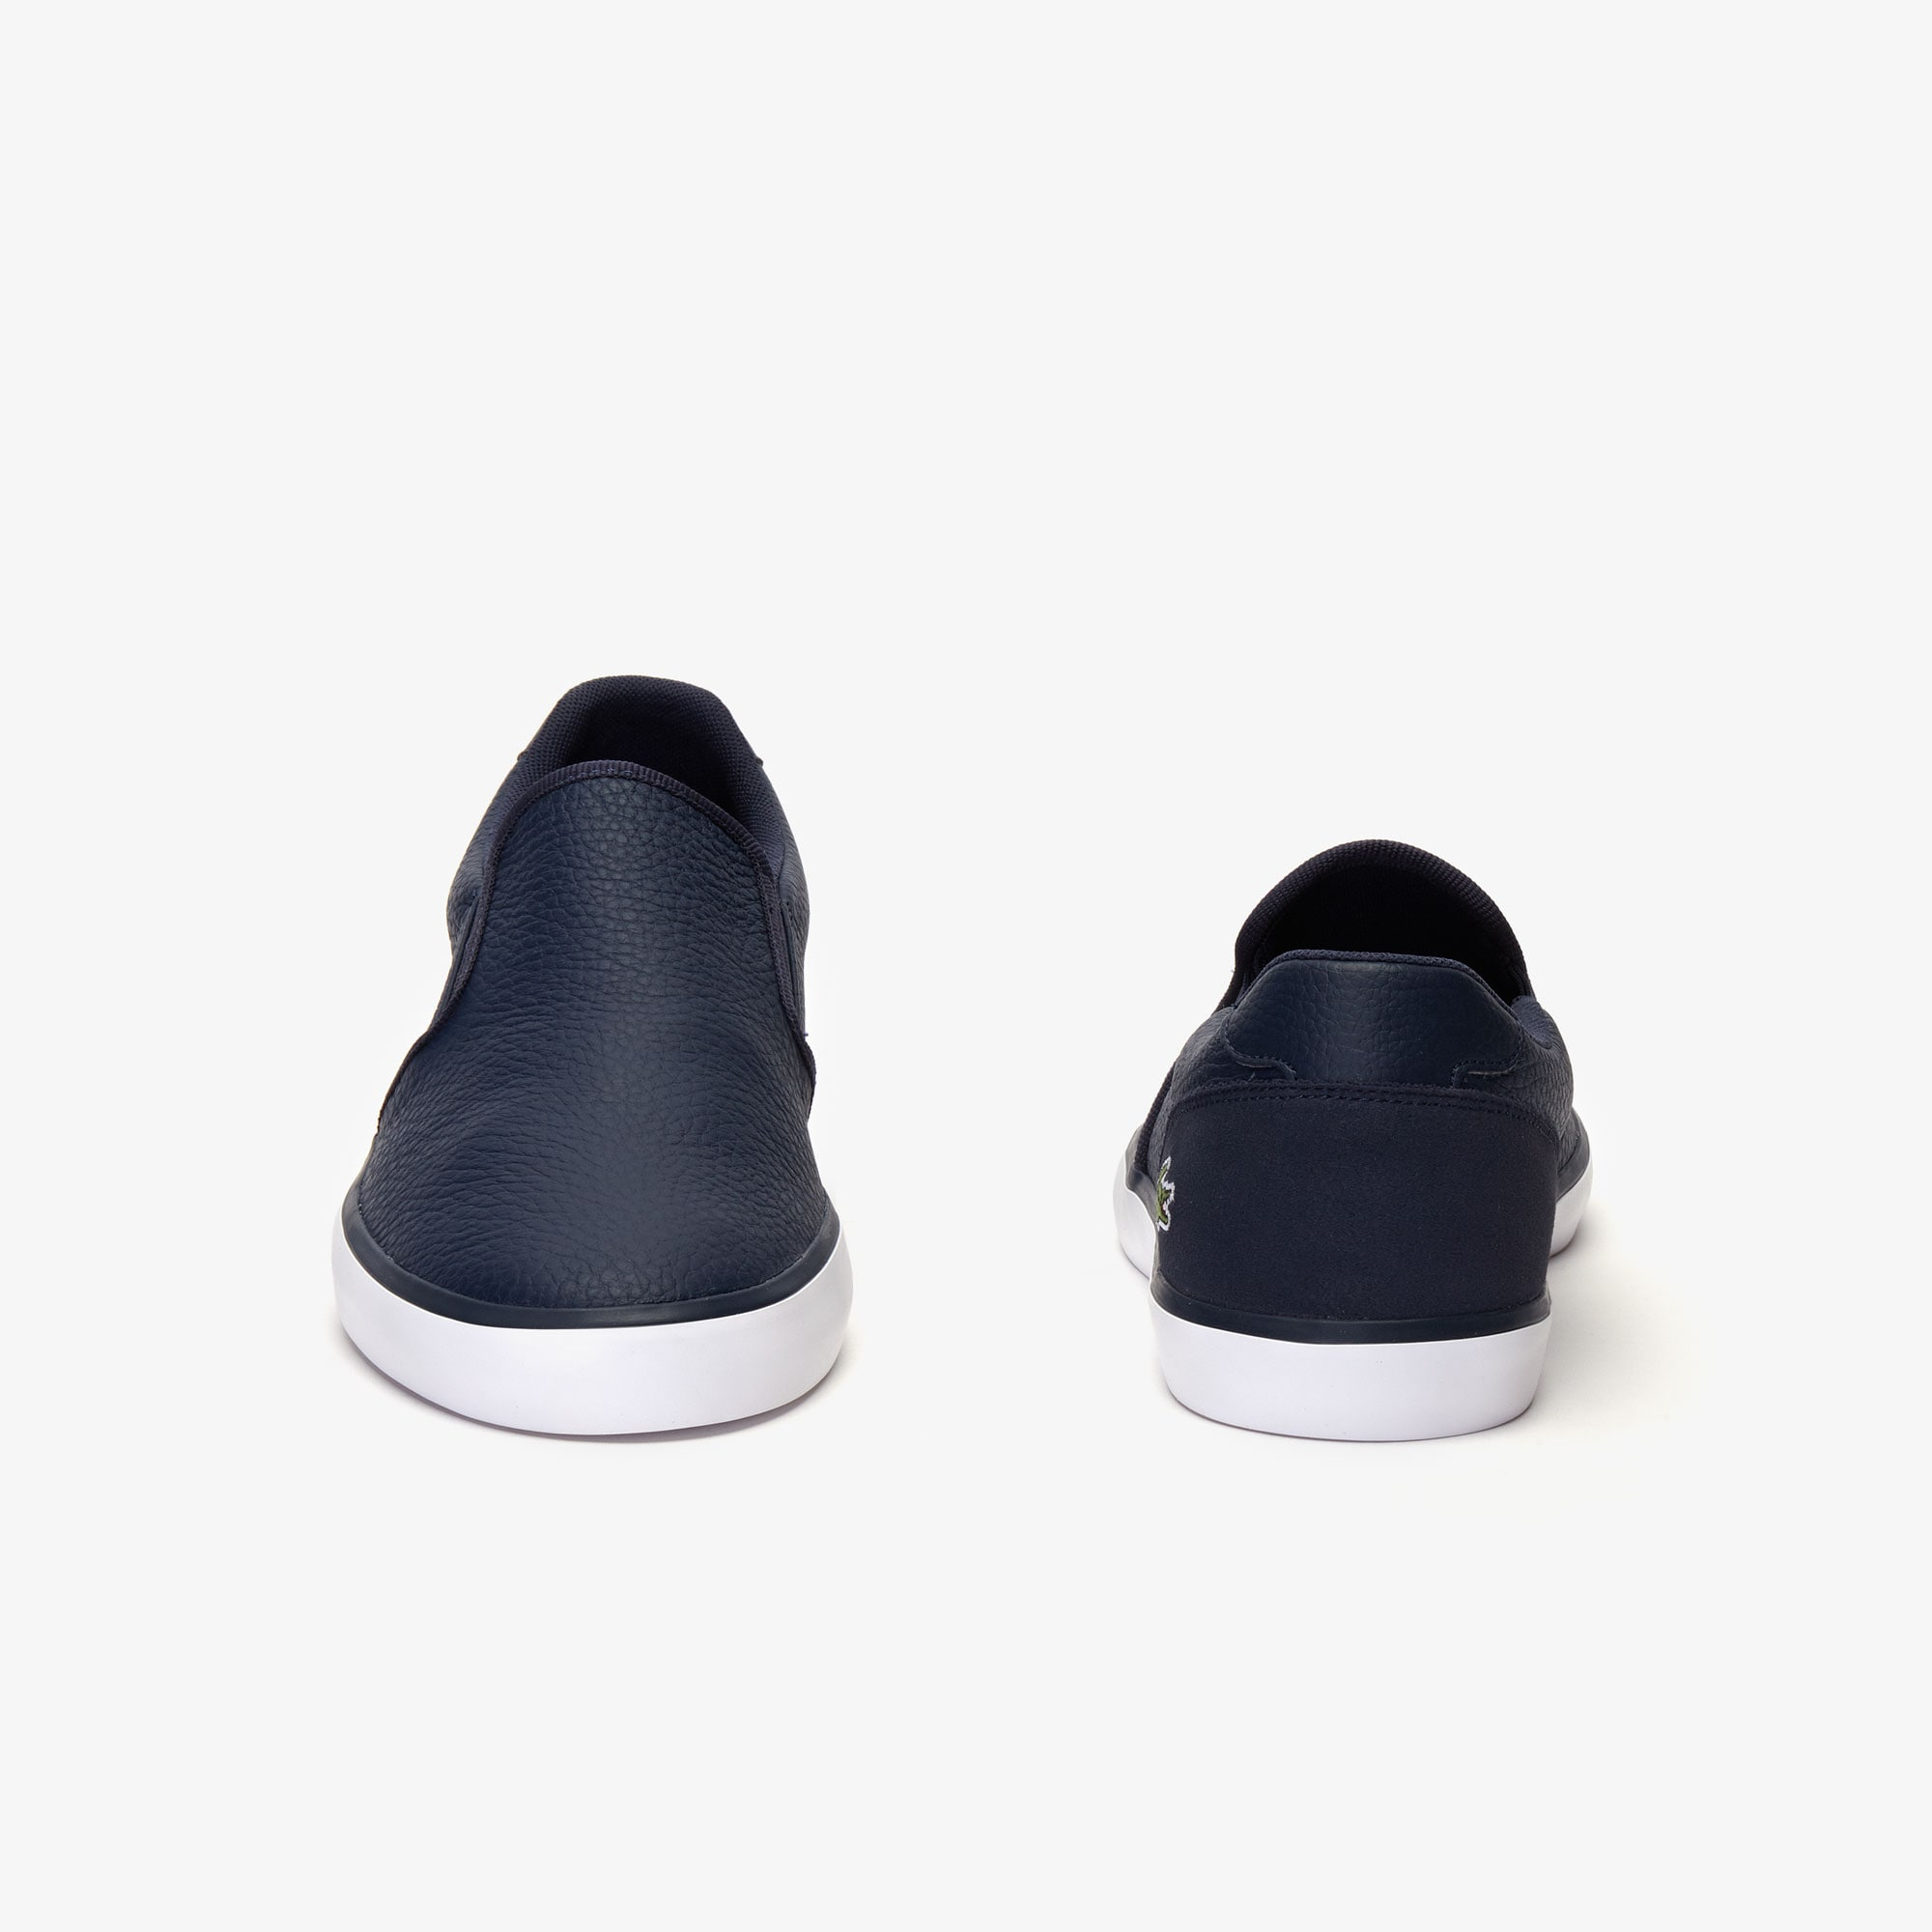 Men's Jouer Leather Slip-On Sneakers